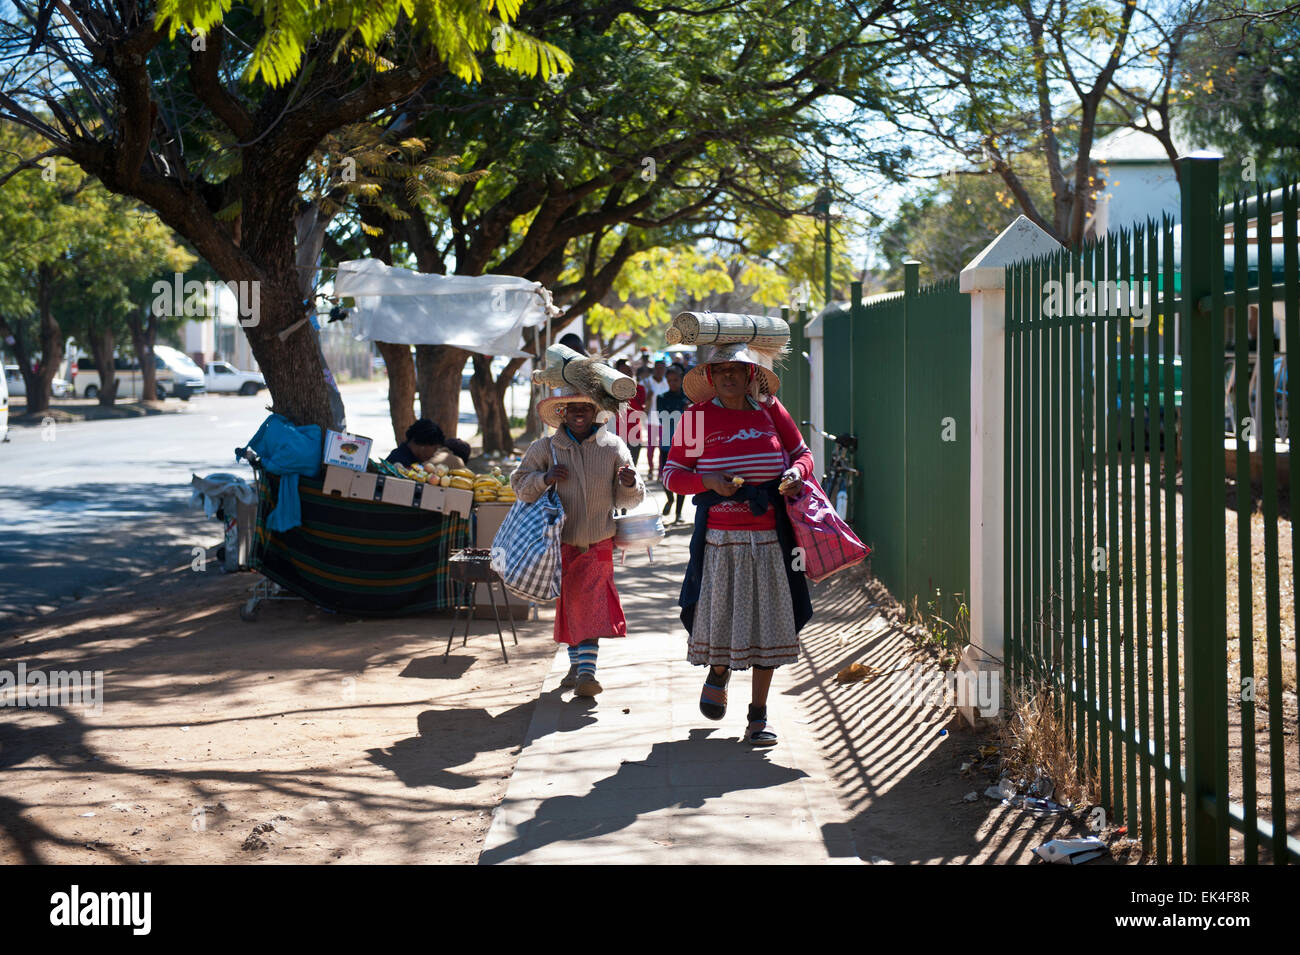 women walking on the street carrying traditional woven mats made from grass . a statue of cecil john rhodes was - Stock Image